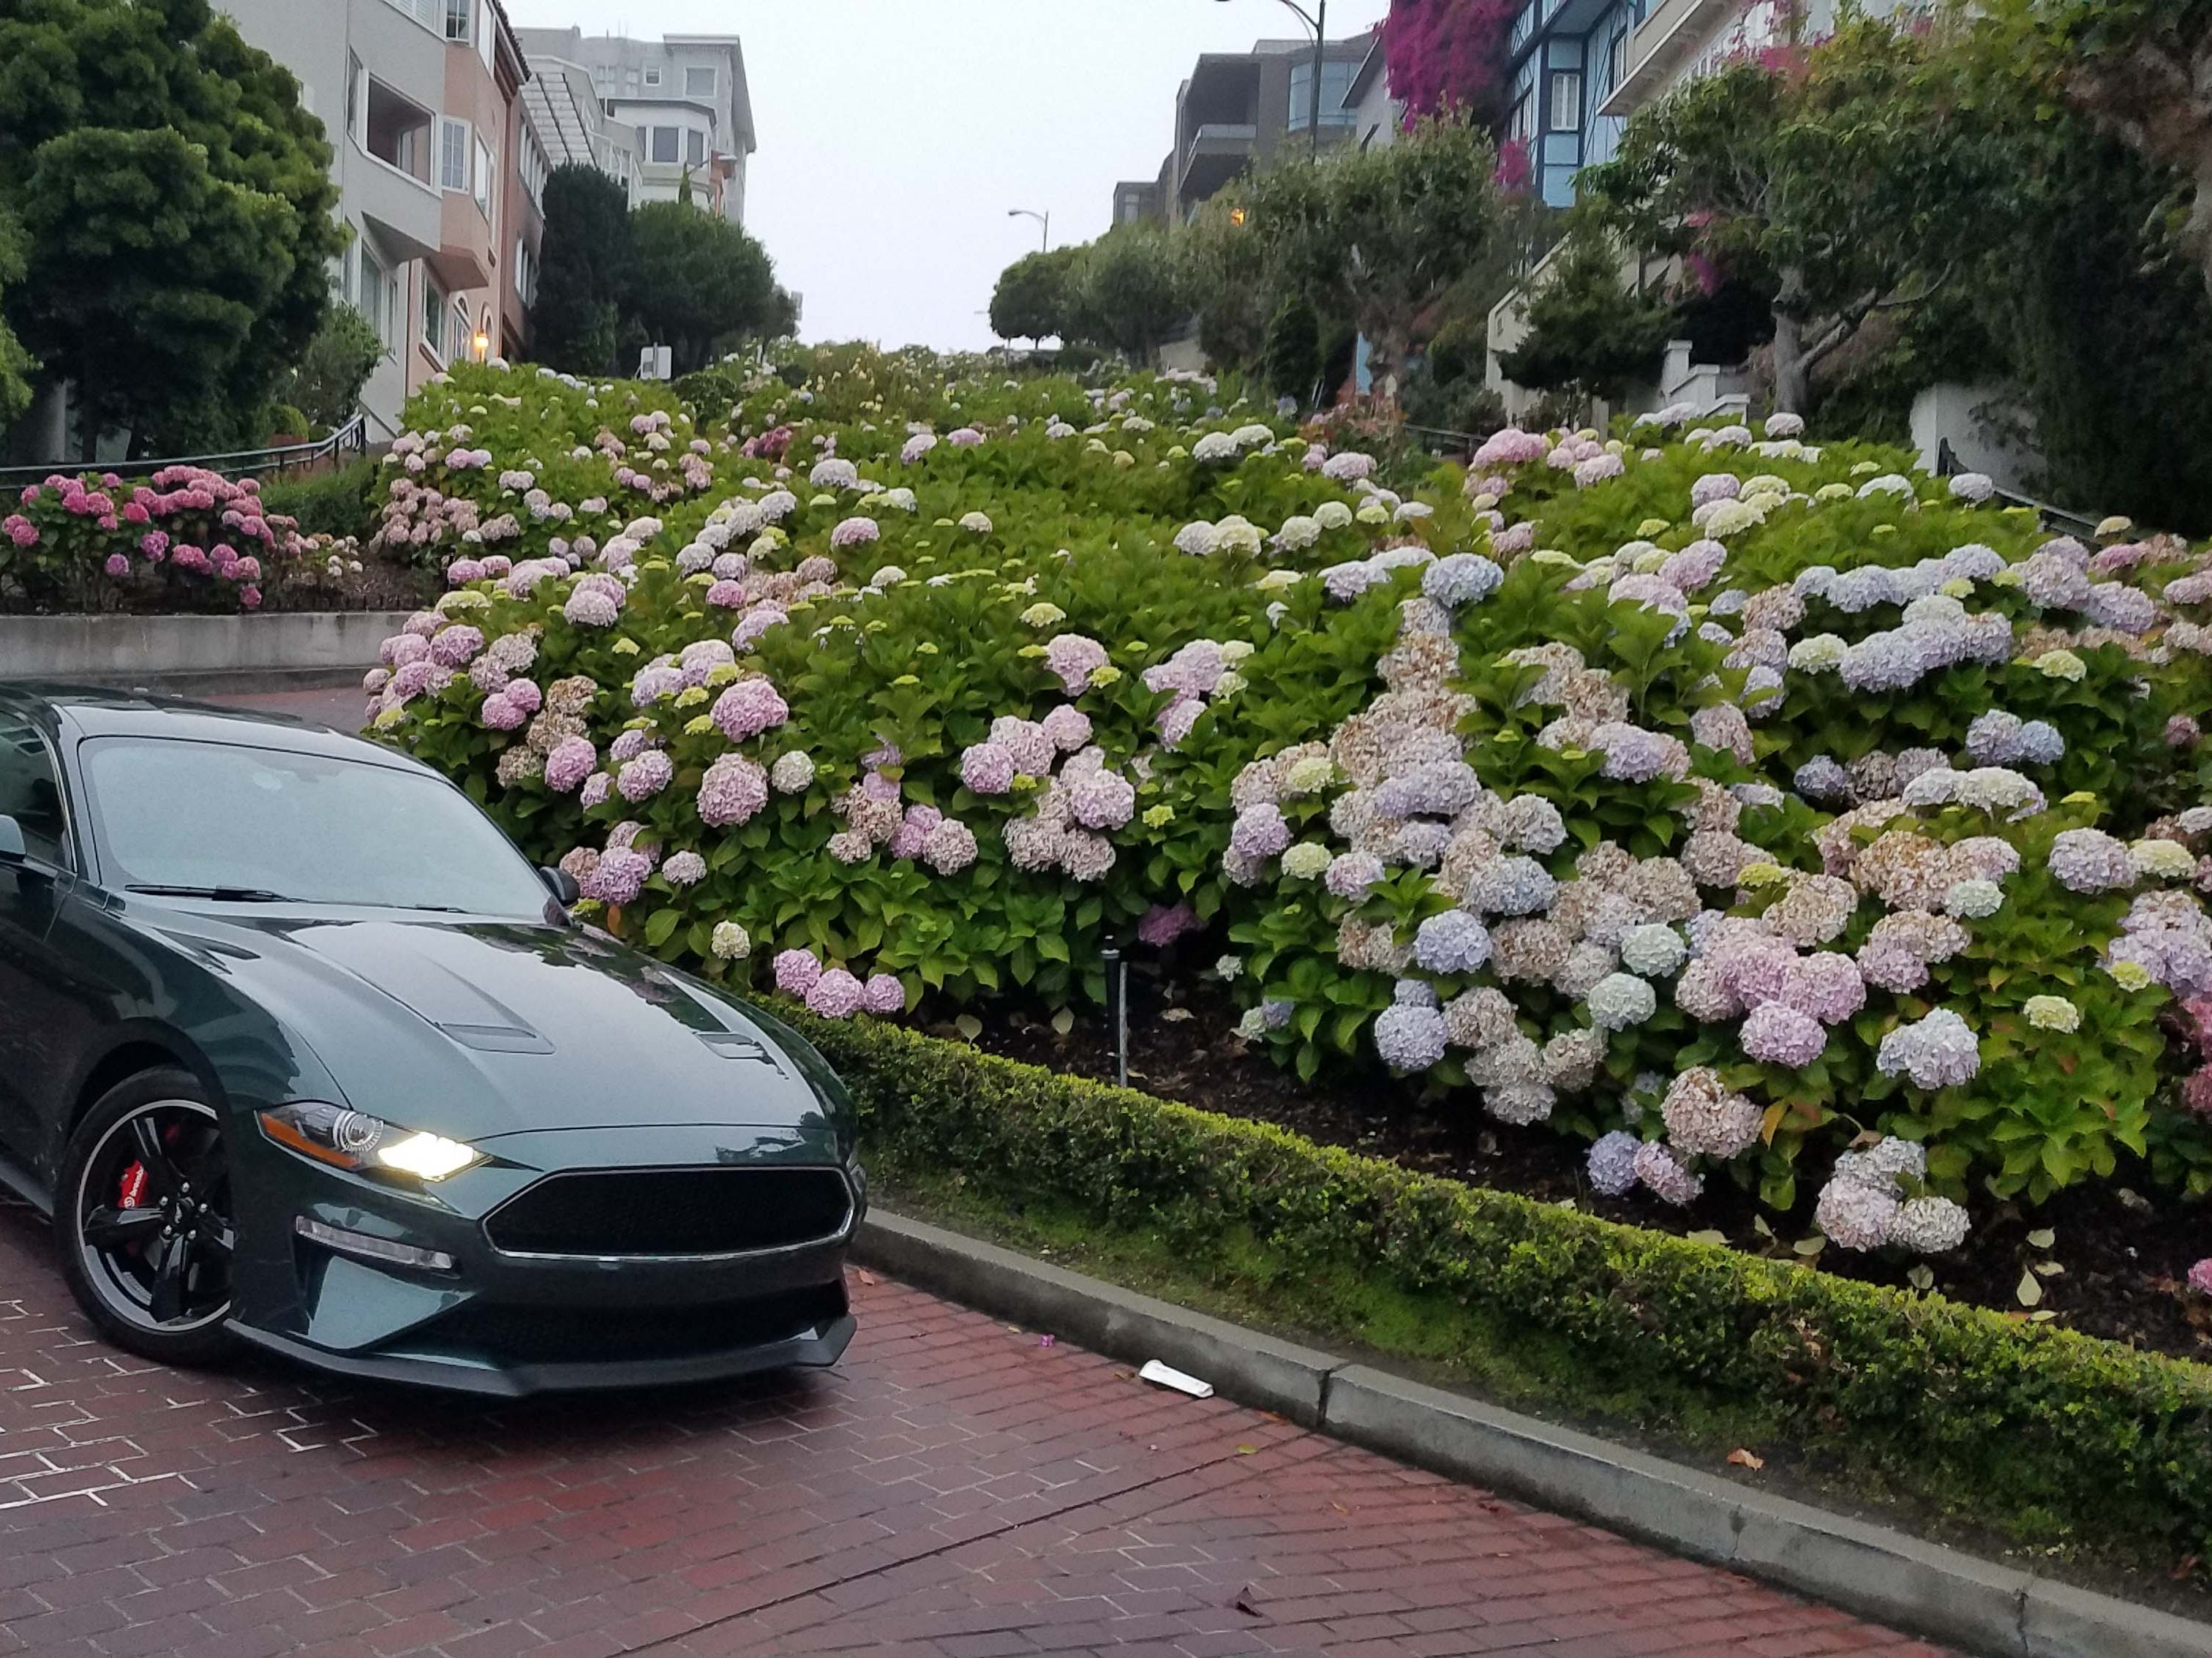 """While the movie """"Bullitt"""" filmed its San Francisco chase scene all over Russian Hill, it chose not to film on the neighborhood's most famous street — Lombard. The curved brick path makes a great backdrop for the 2019 Ford Mustang Bullitt."""